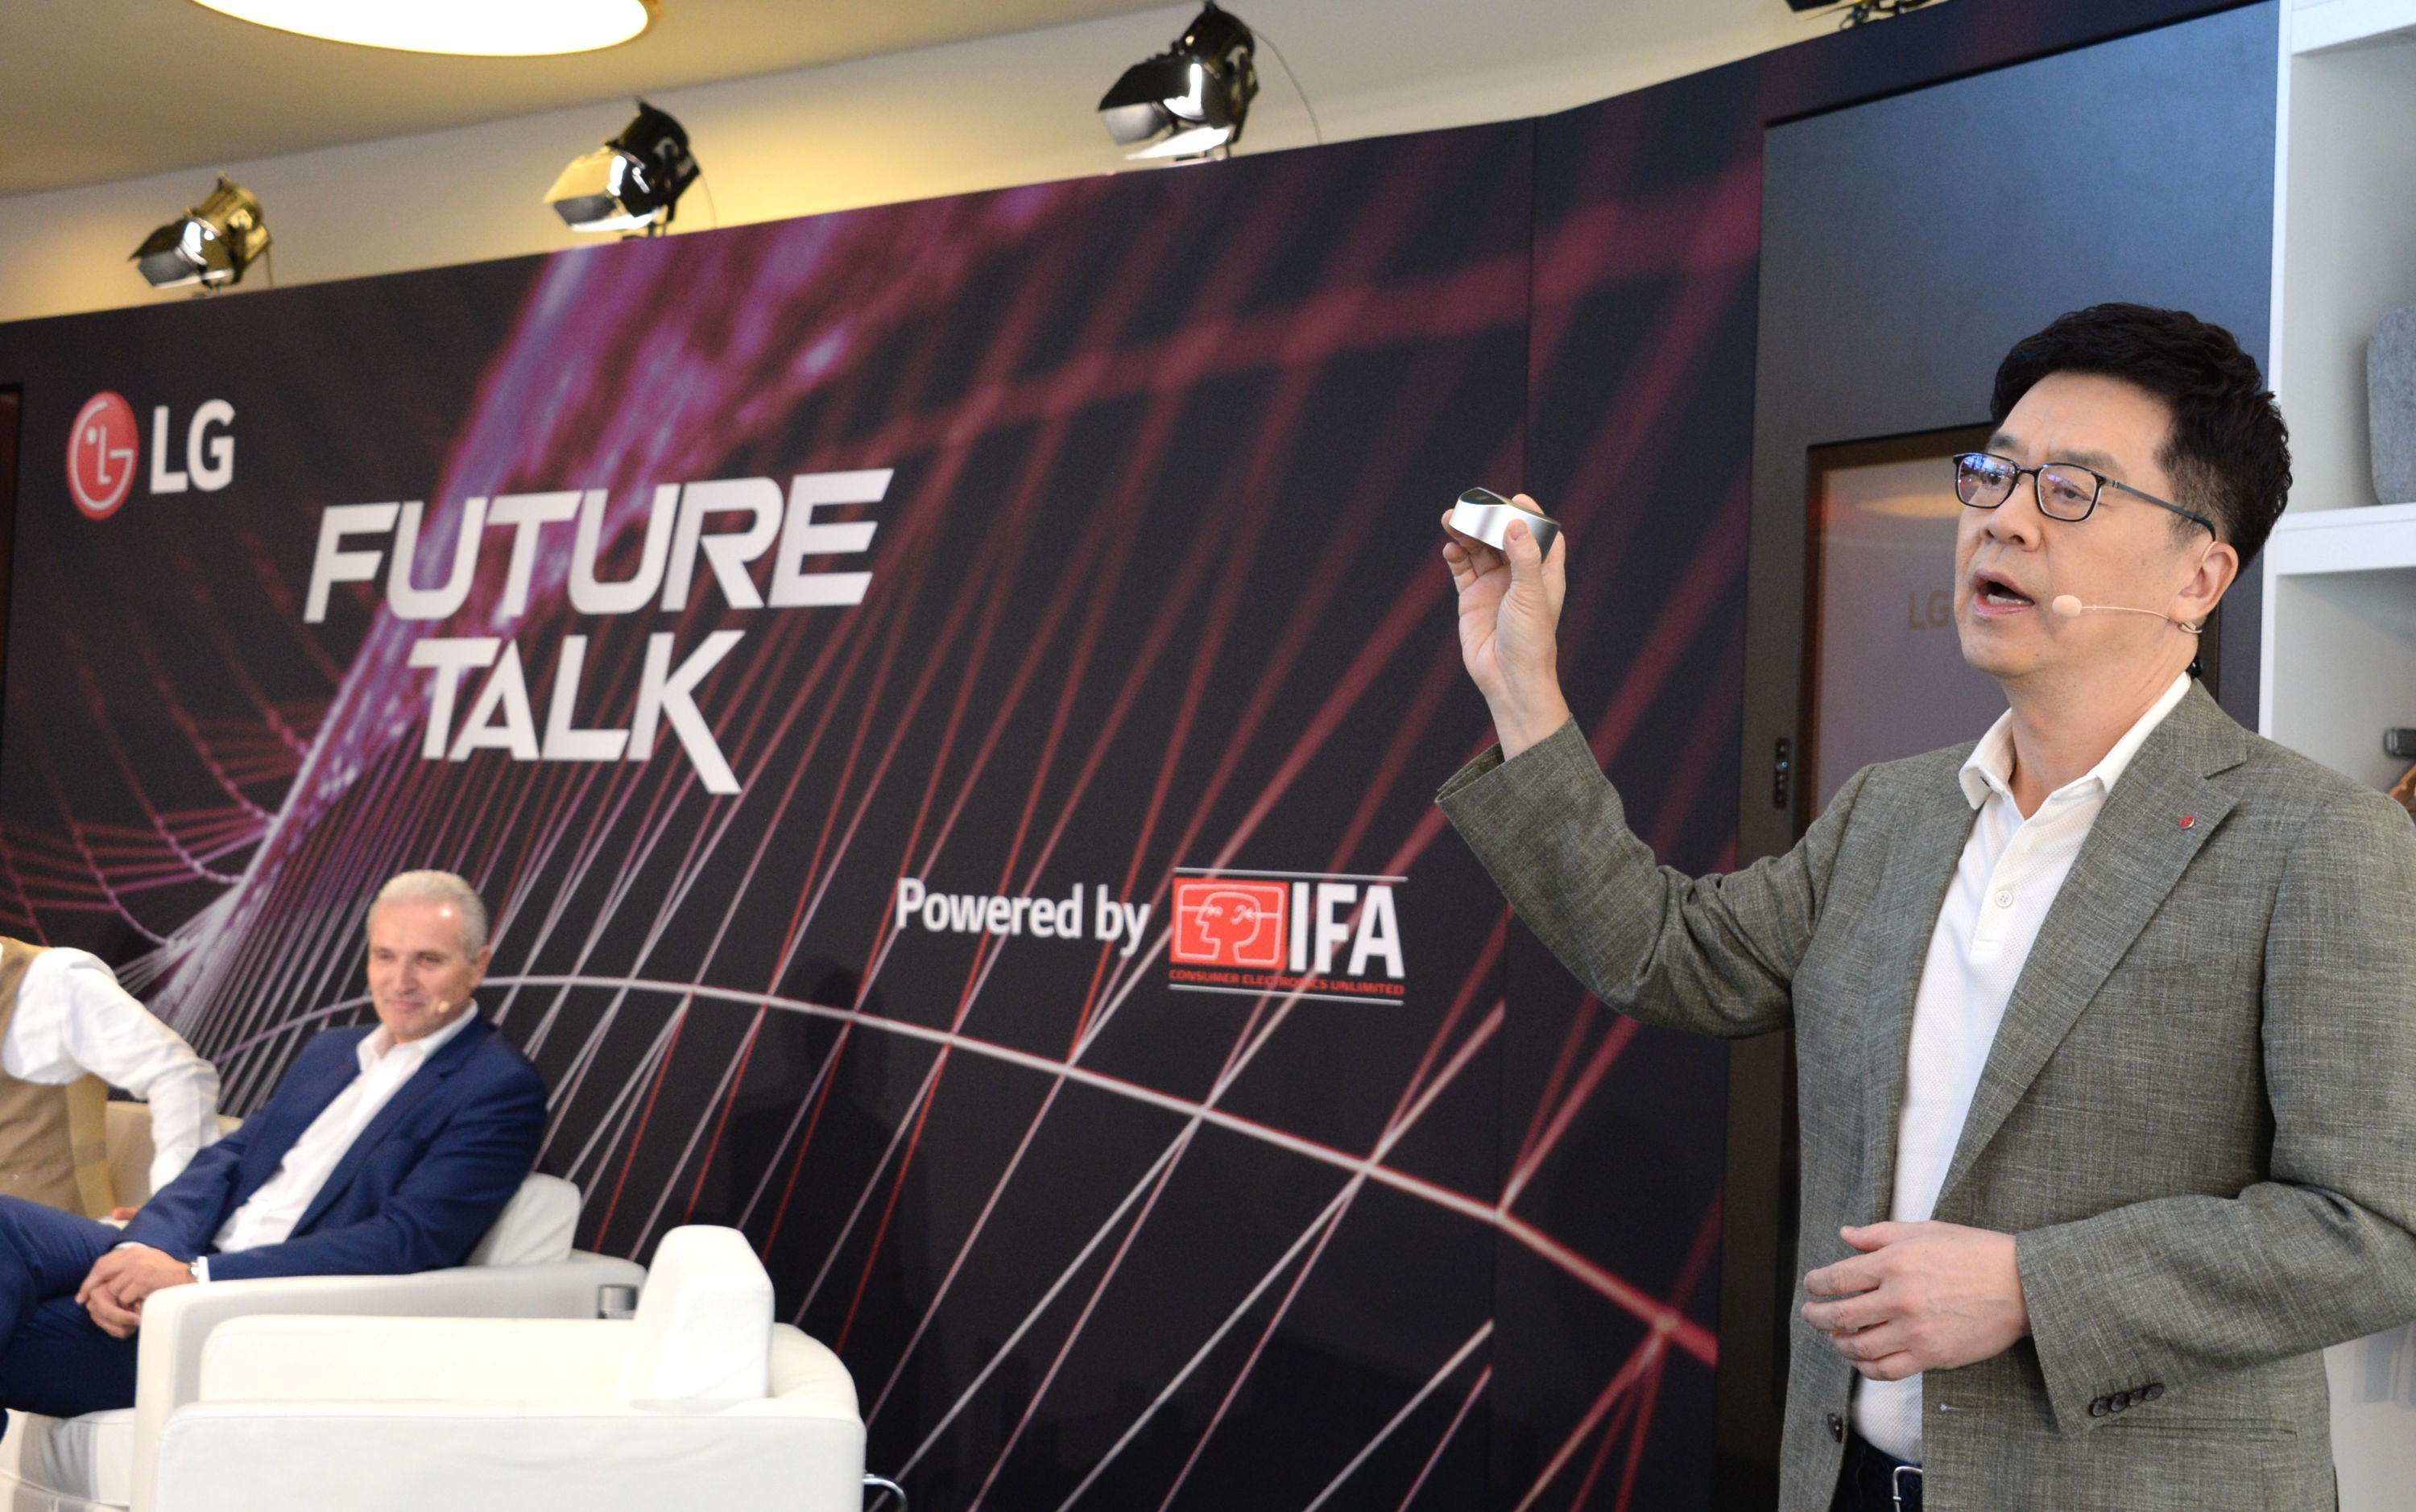 Dr. I.P. Park, president and chief technology officer of LG Electronics, delivers a speech at a panel talk event to kick off IFA 2019.